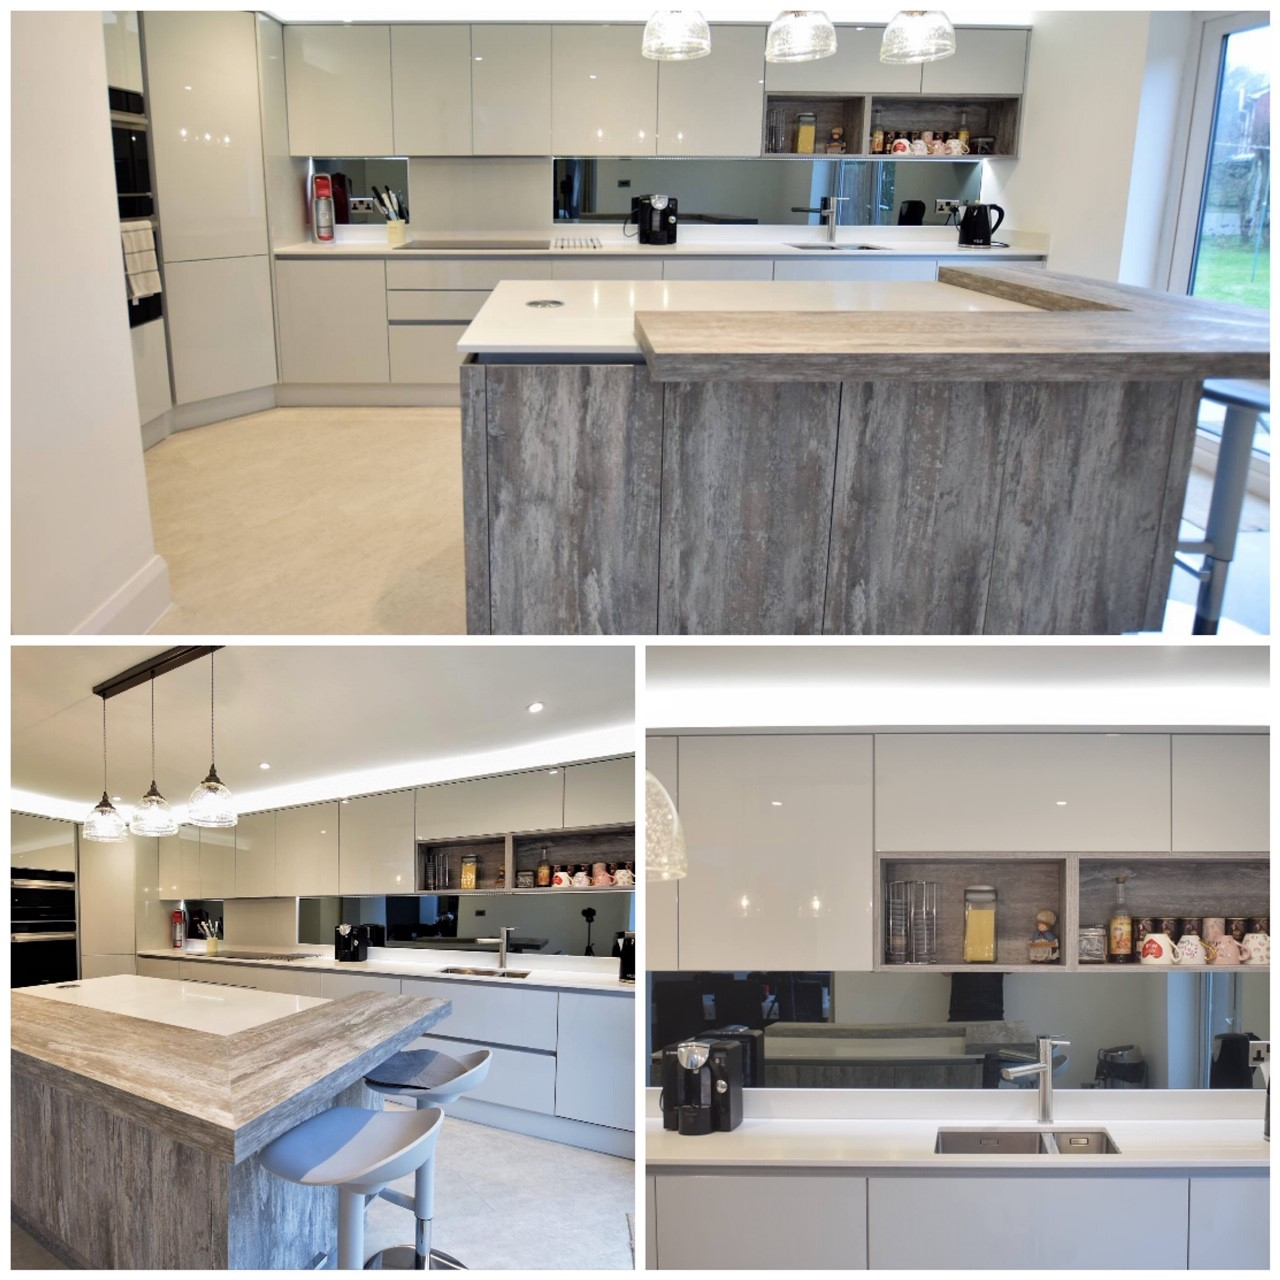 Ashcroft - H-Line Gloss Light Grey & Tundra Stone